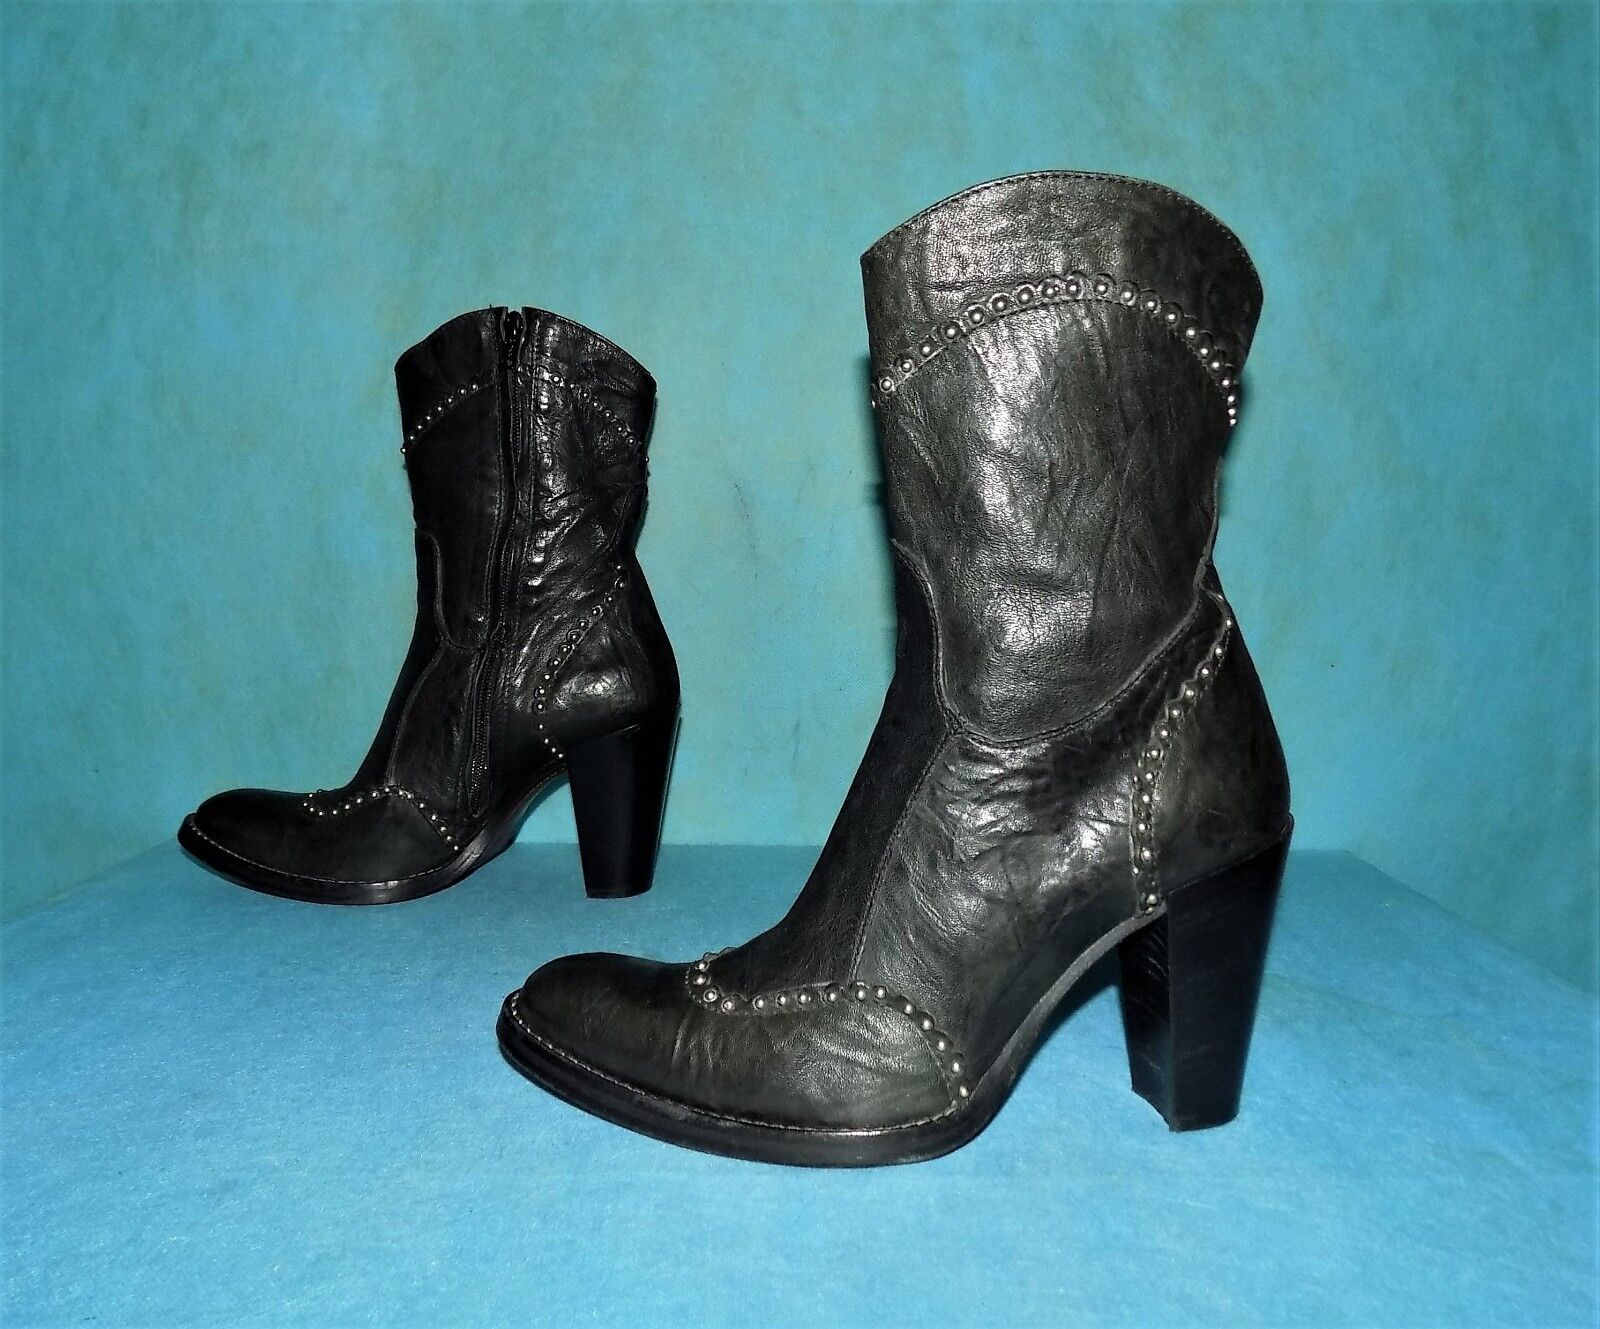 Boots booties FUGA all leather leather leather black p 37 fr super condition 8957b9